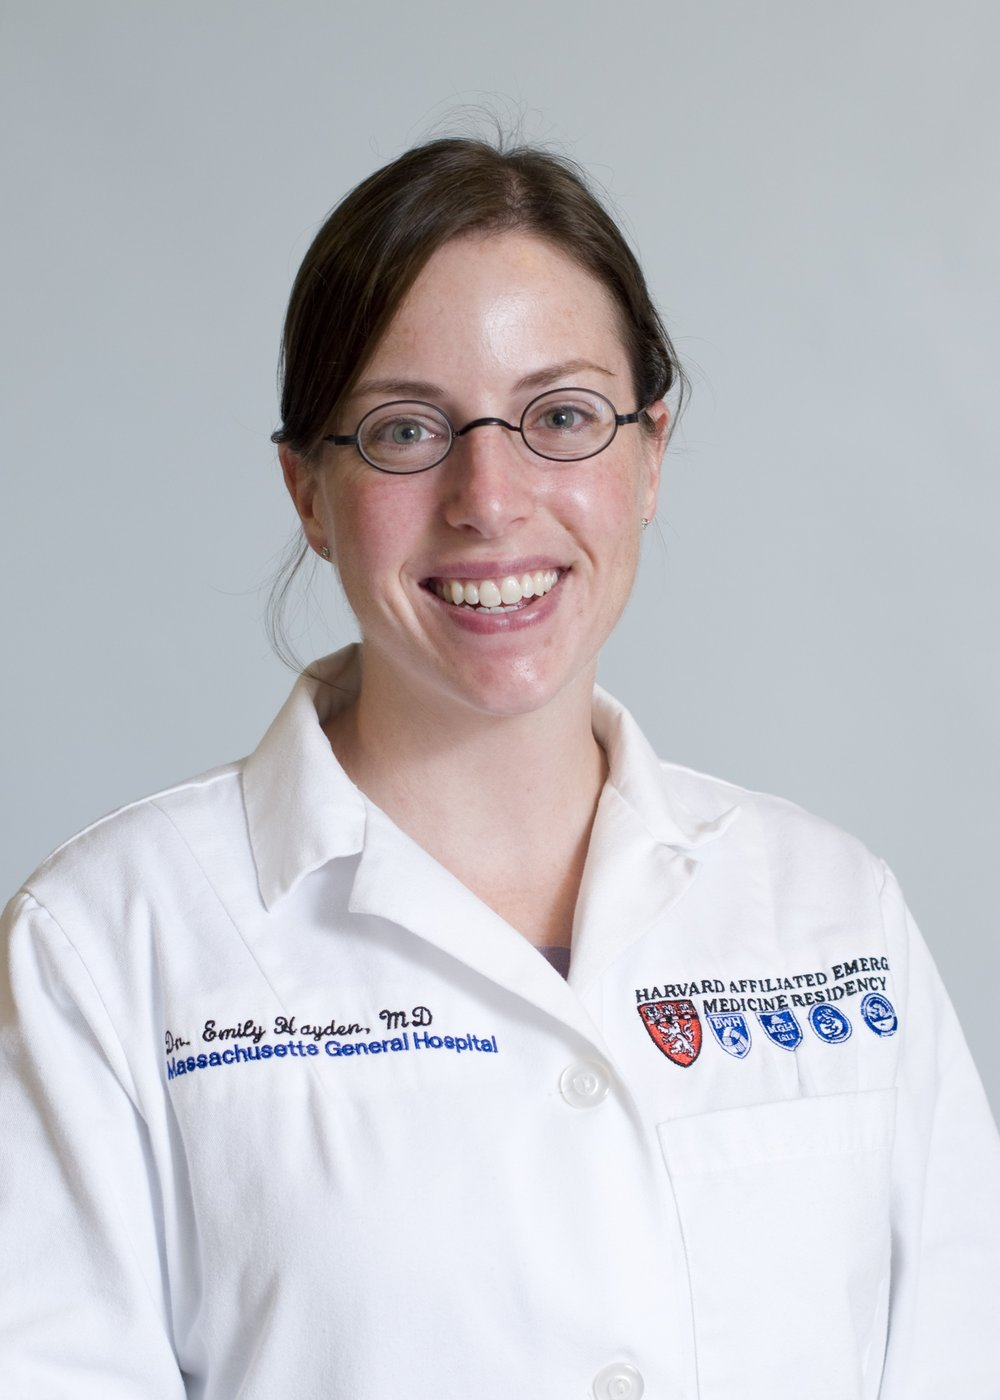 - Emily Hayden, MD, MHPEDirector of TelemedicineDepartment of Emergency MedicineMassachusetts General Hospital